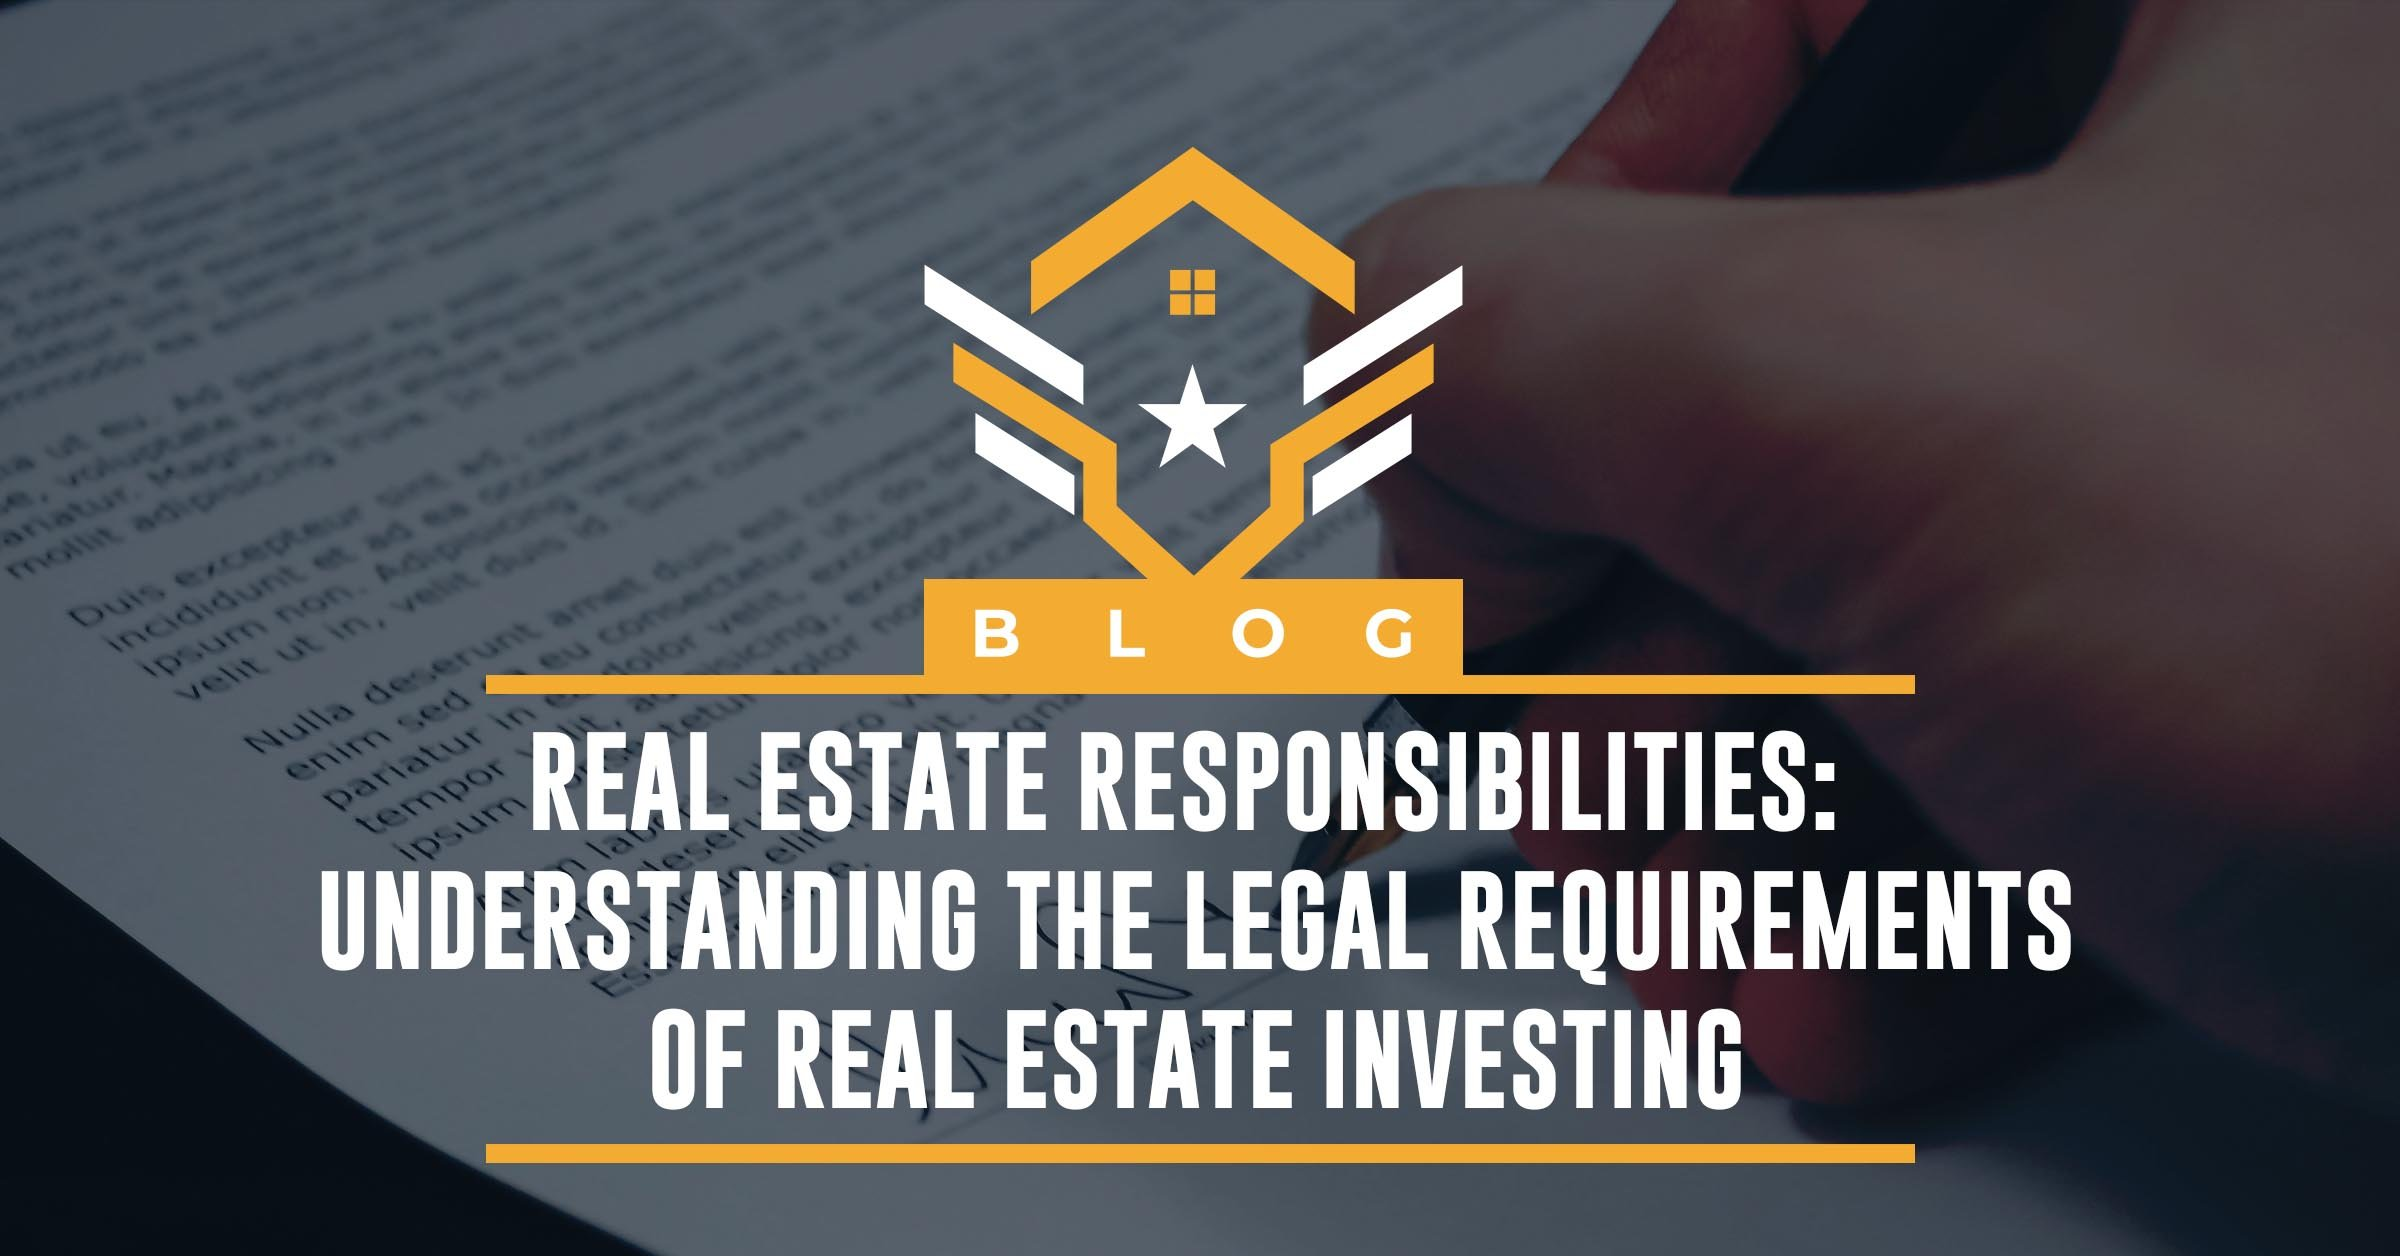 legal requirements of real estate